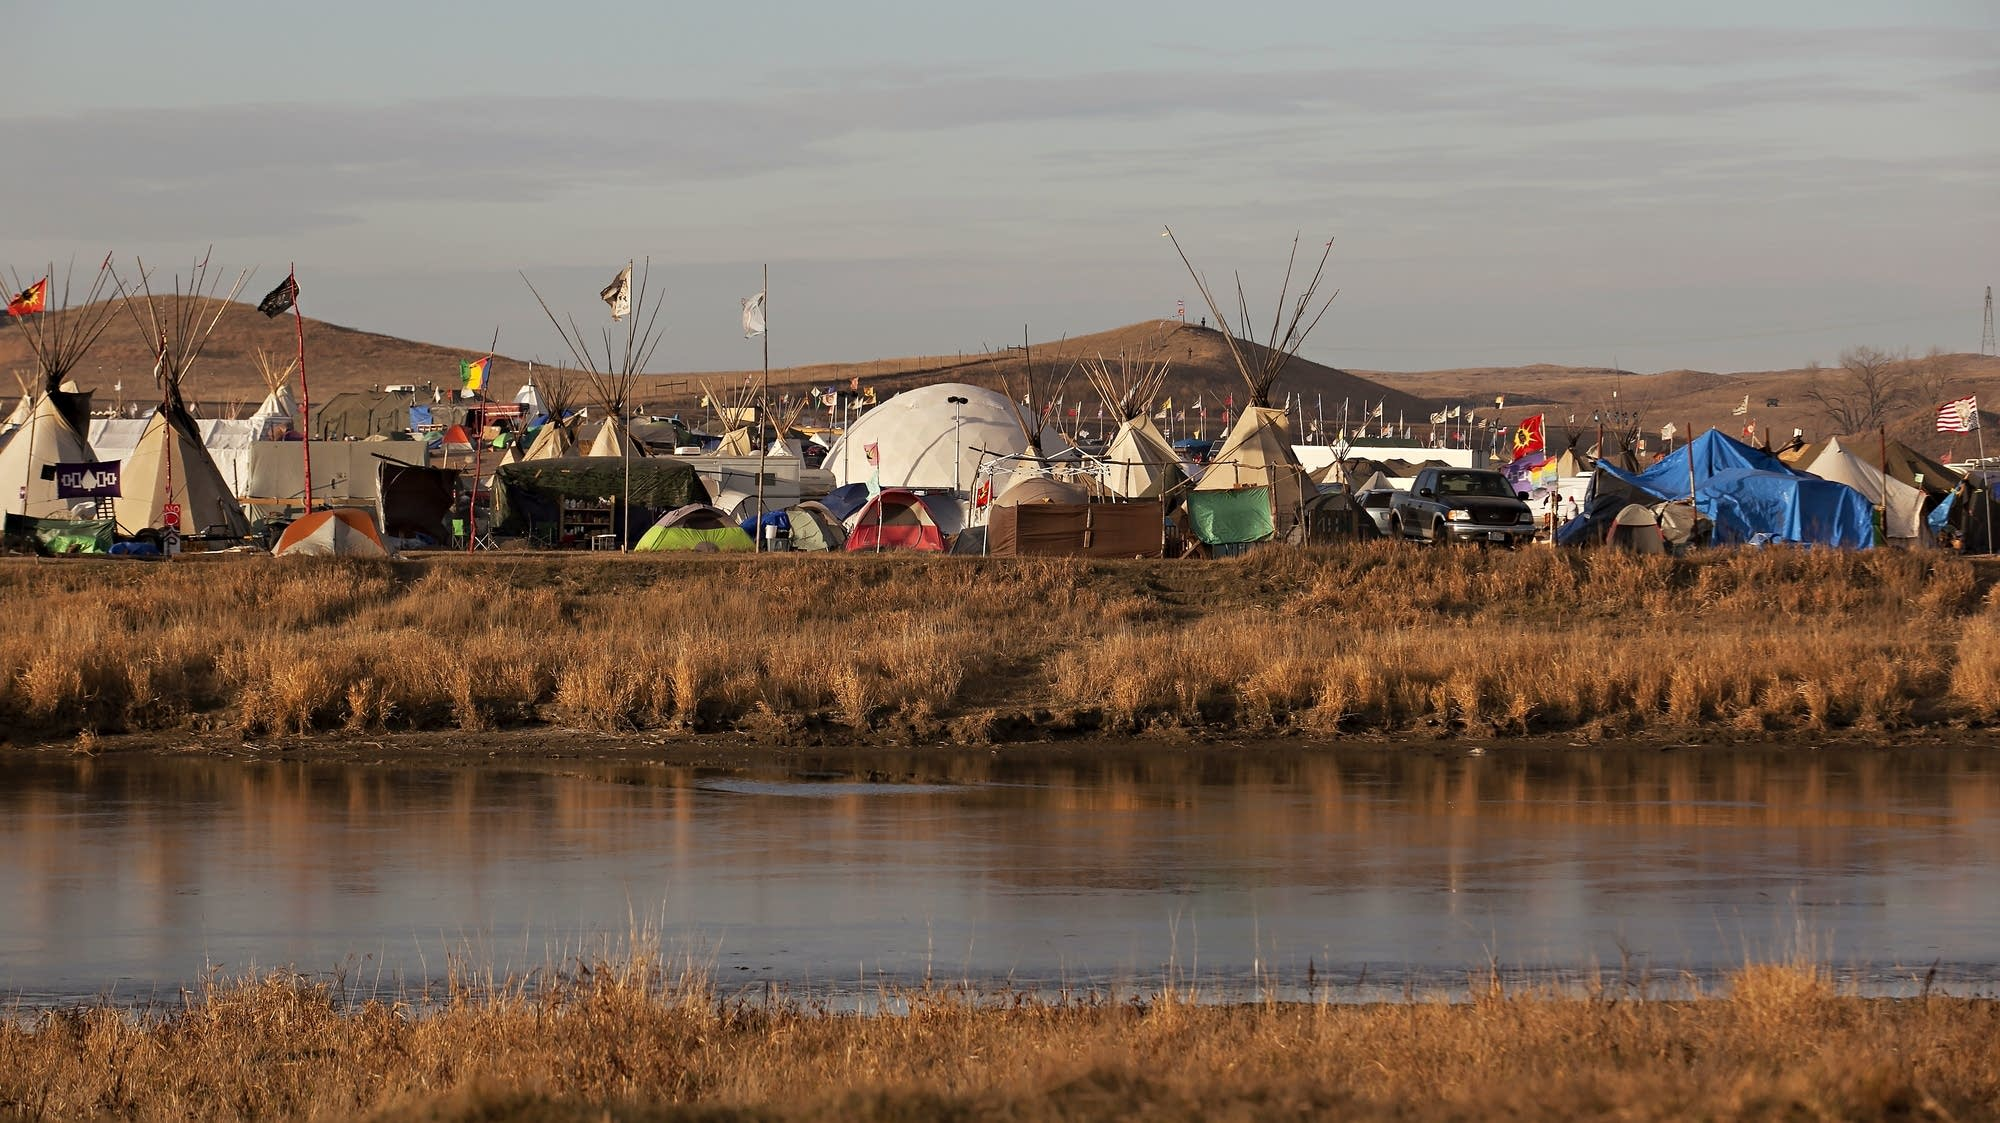 A portion of an encampment called the Oceti Sakowin Camp.